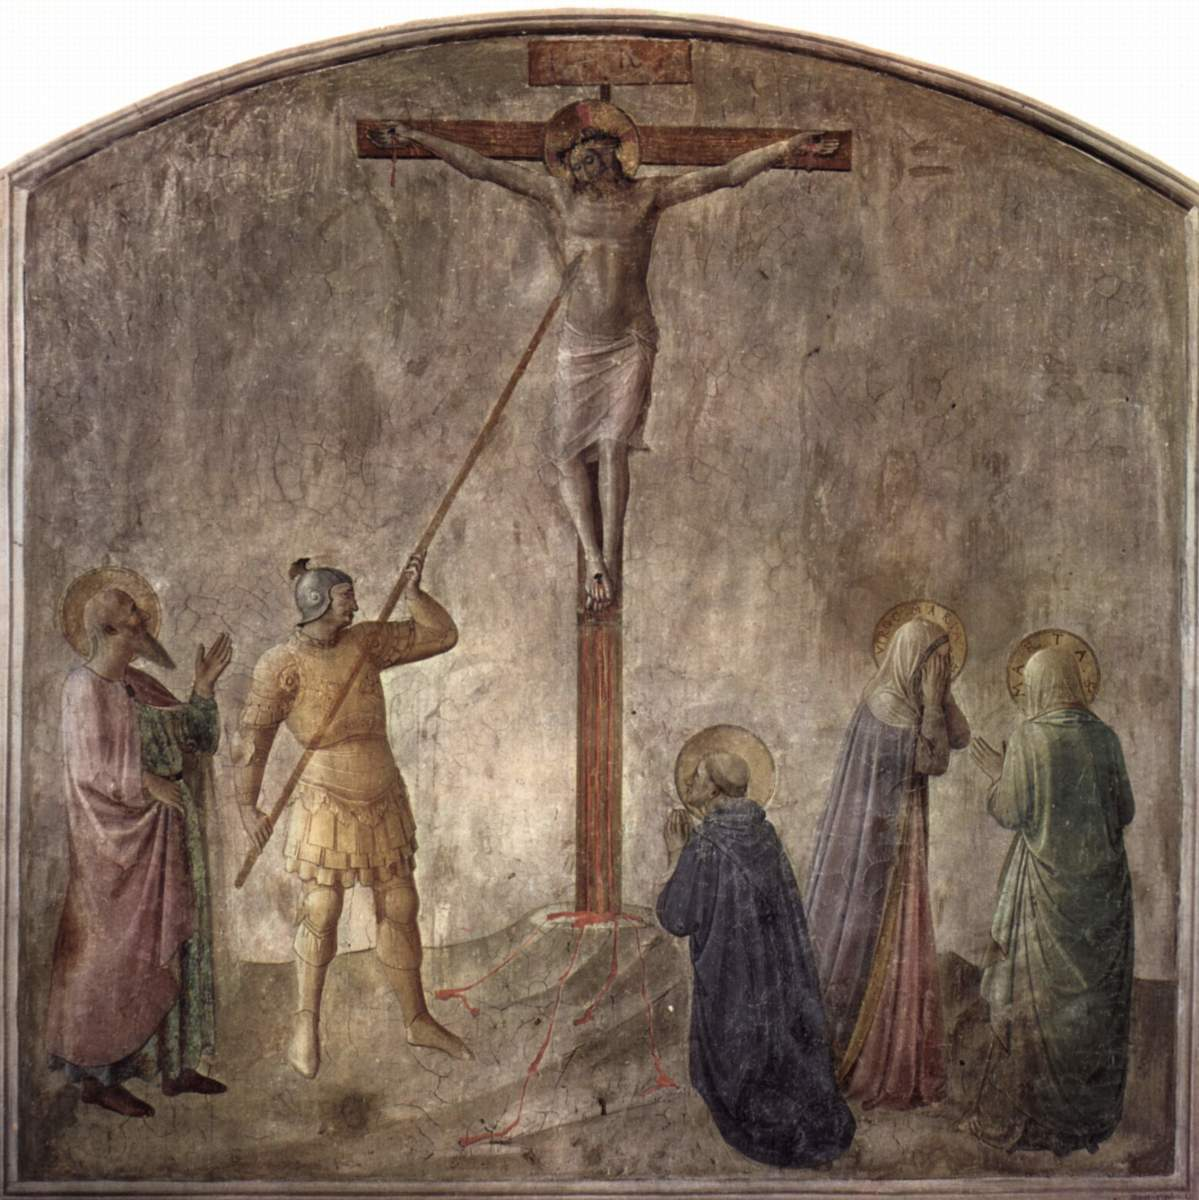 from Fra Angelico (1395-1455)